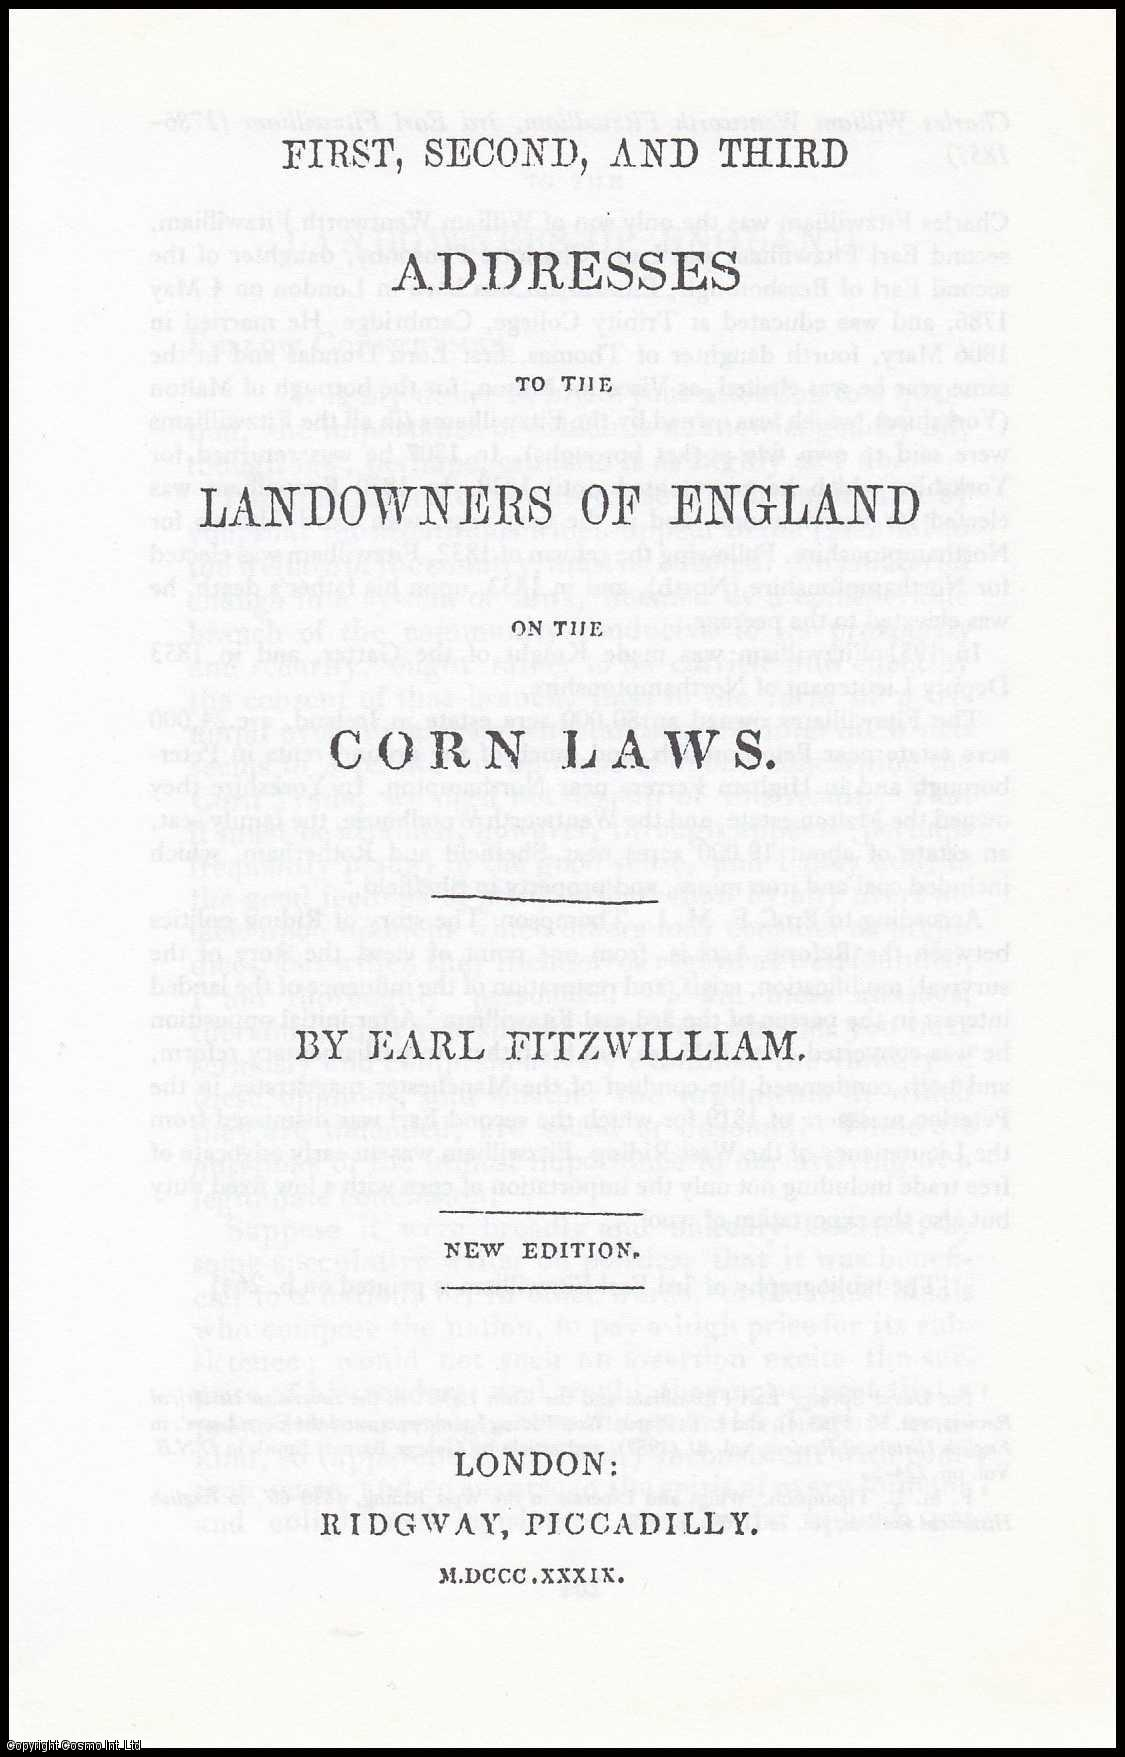 EARL FITZWILLIAM - [Corn Laws] First, Second, and Third Addresses to the Landowners of England on the Corn Laws. 1839. A disbound facsimile article from a larger volume.